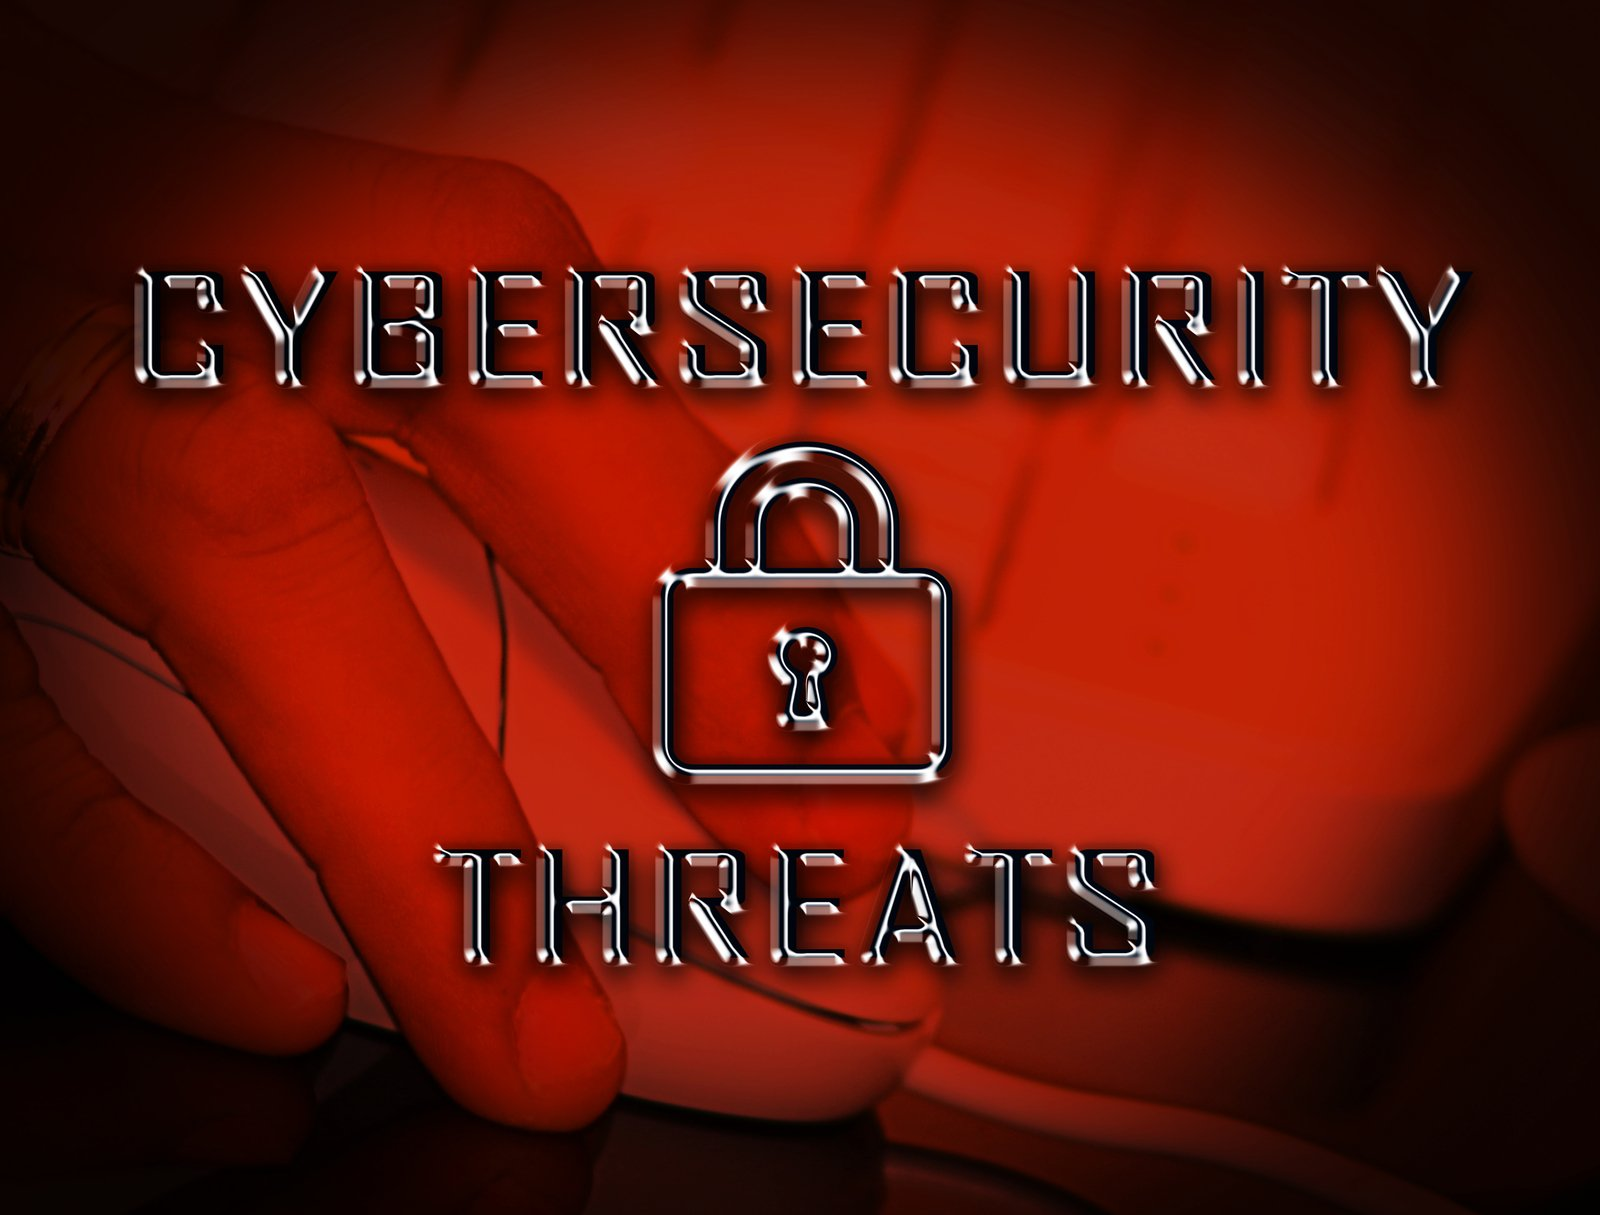 types of cybersecurity threats